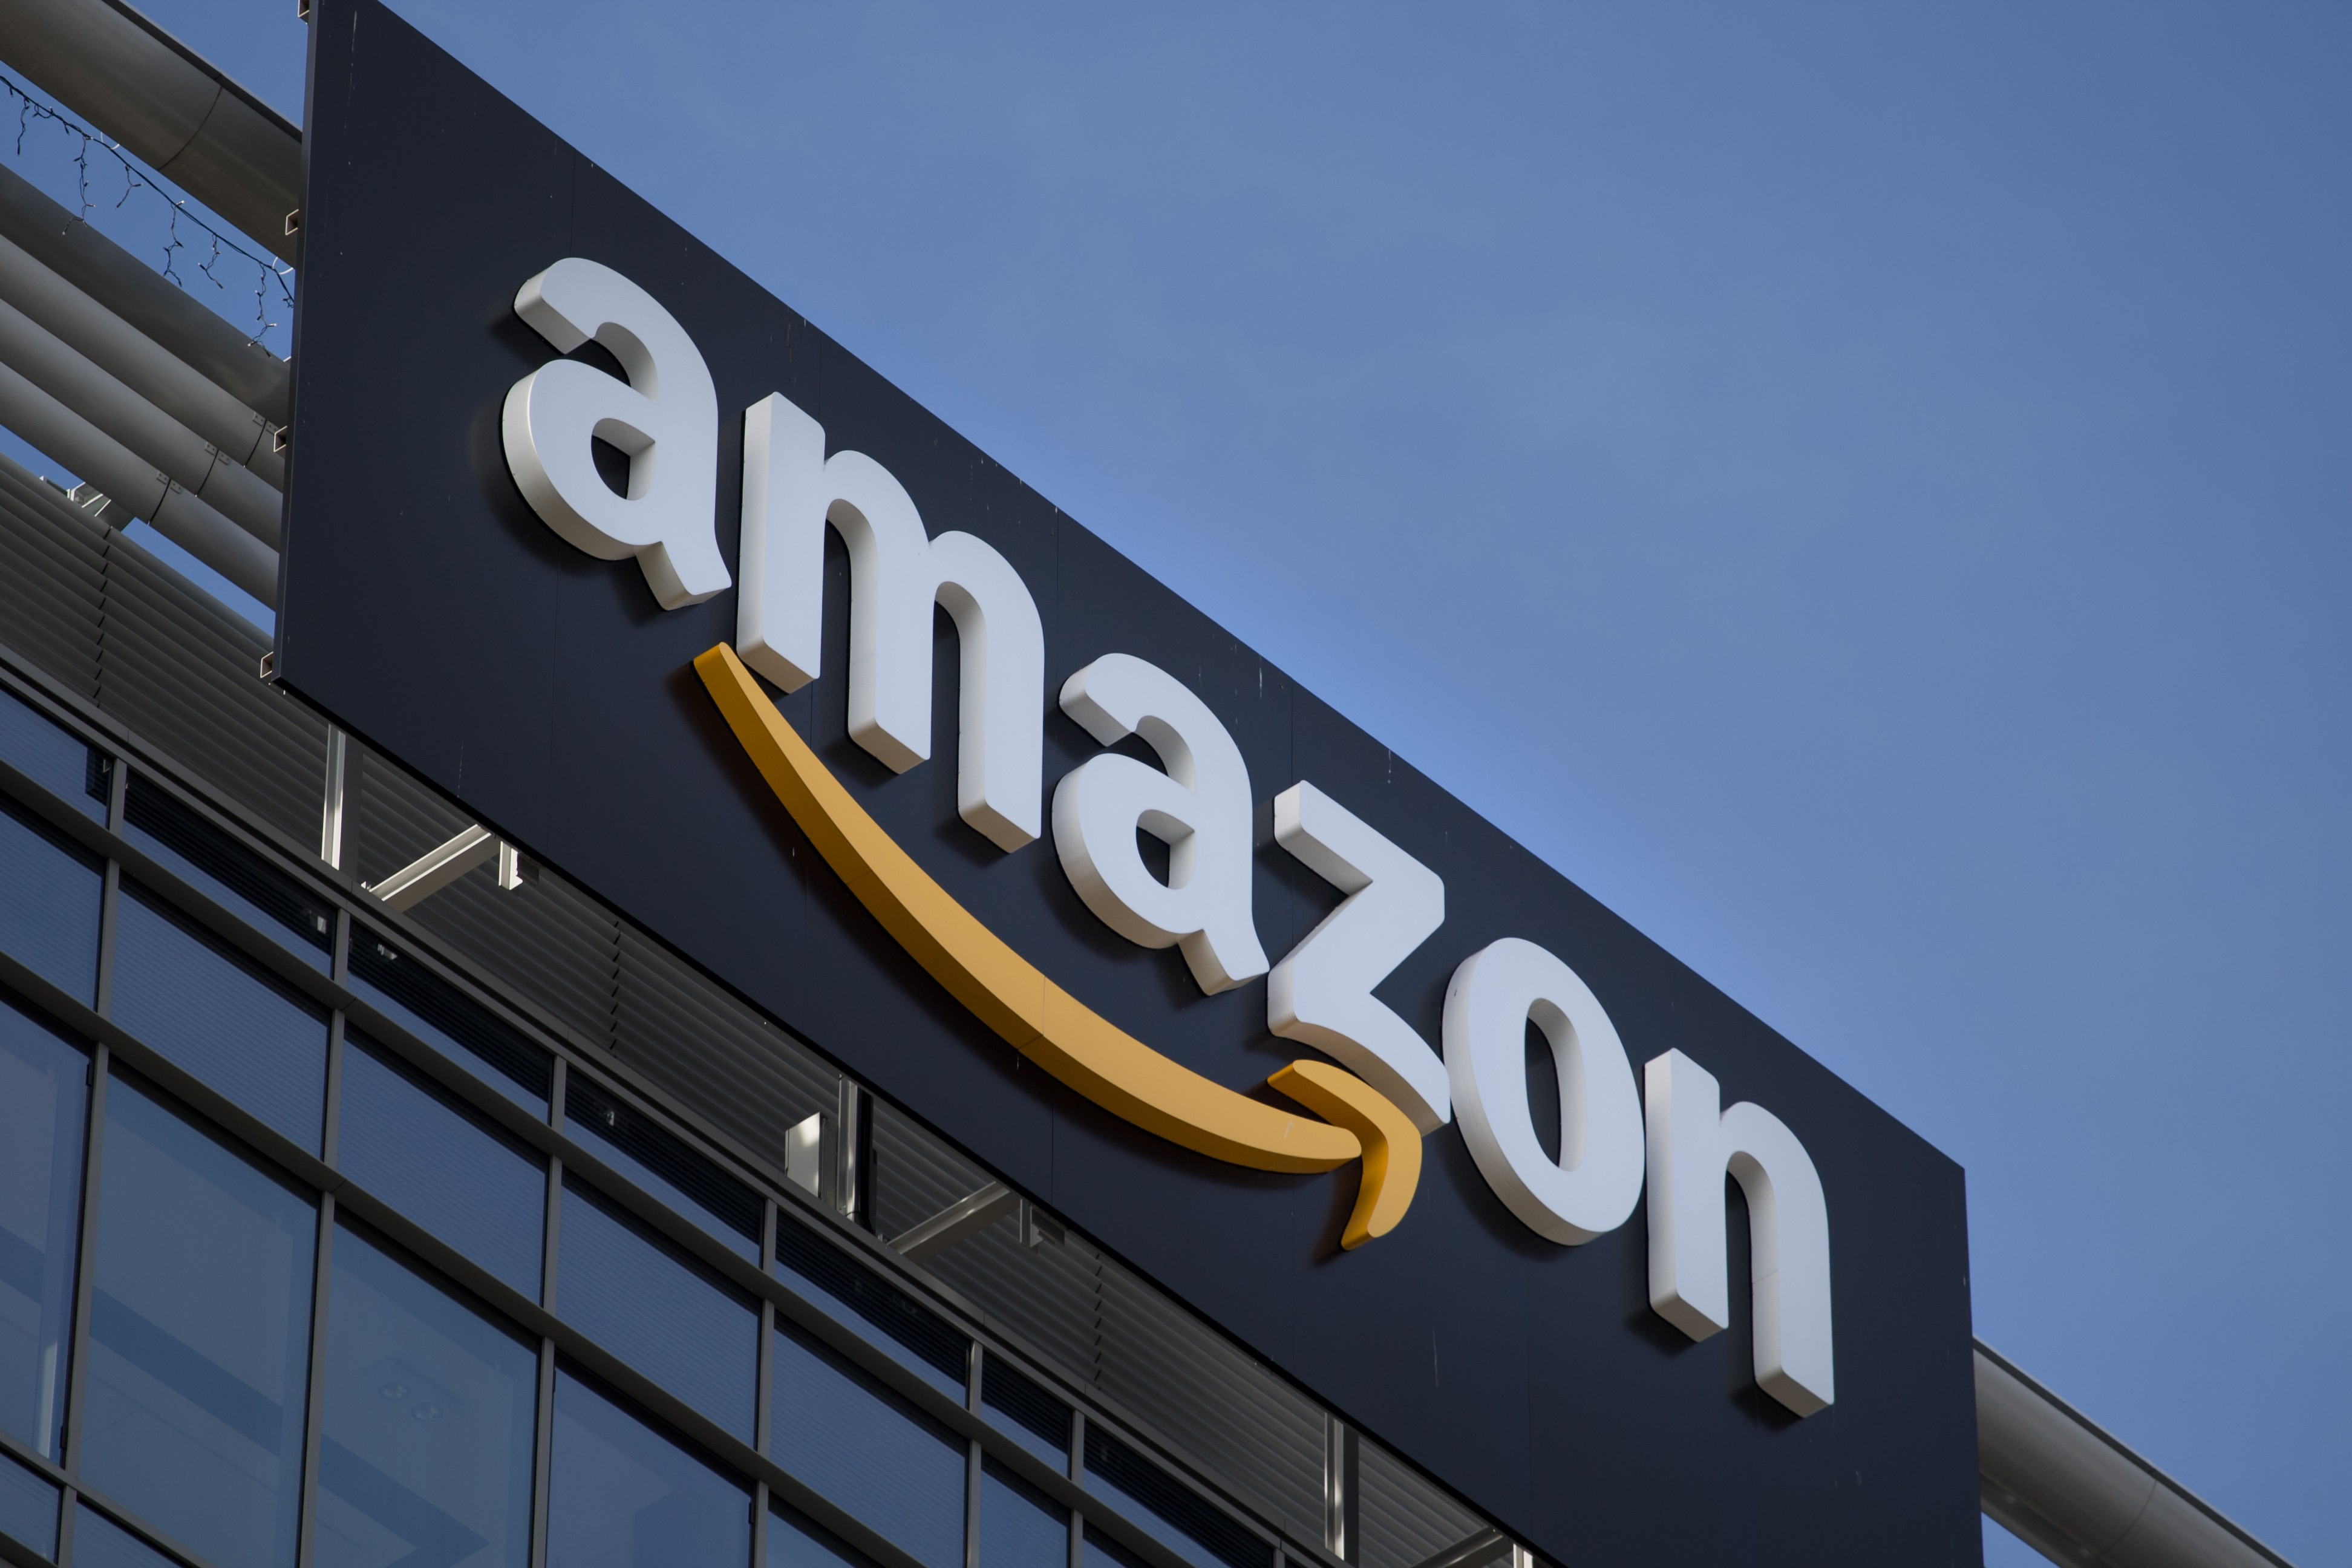 Colorado lawmakers urge Amazon to open HQ2 in state